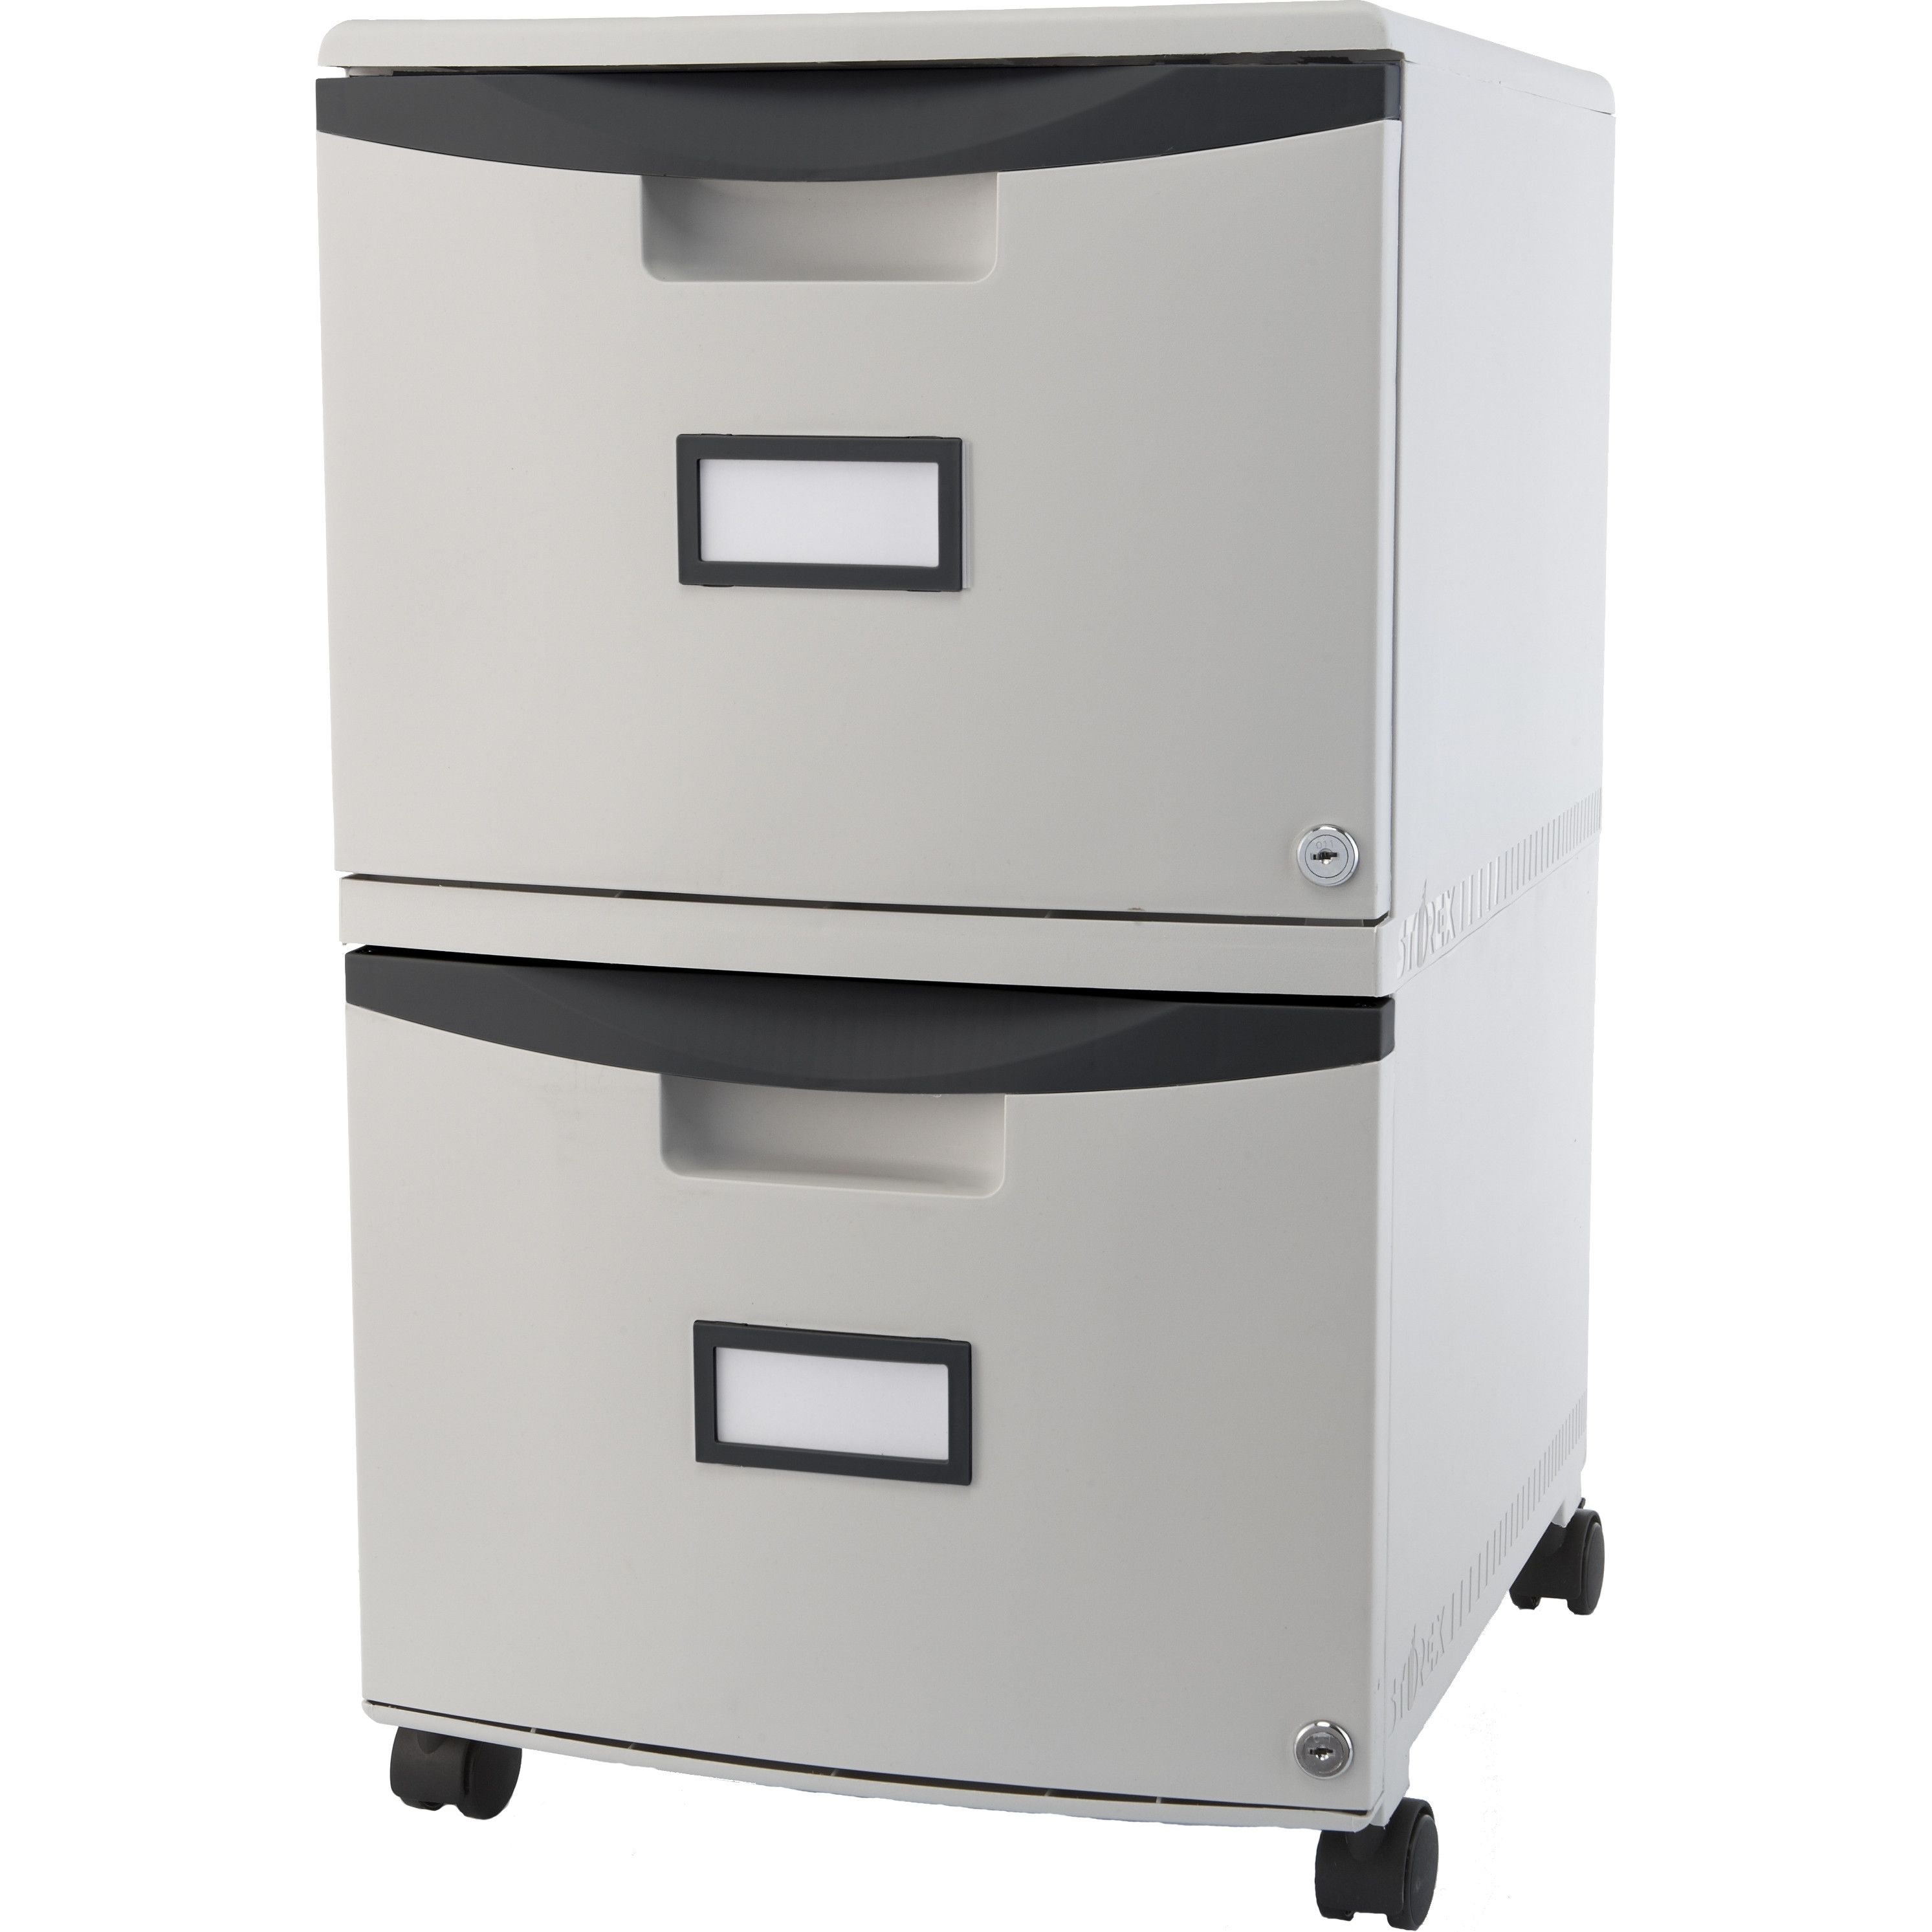 file cabinet with locking system http advice tips com rh pinterest com File Cabinet Locking Bar File Cabinet Locking Bar